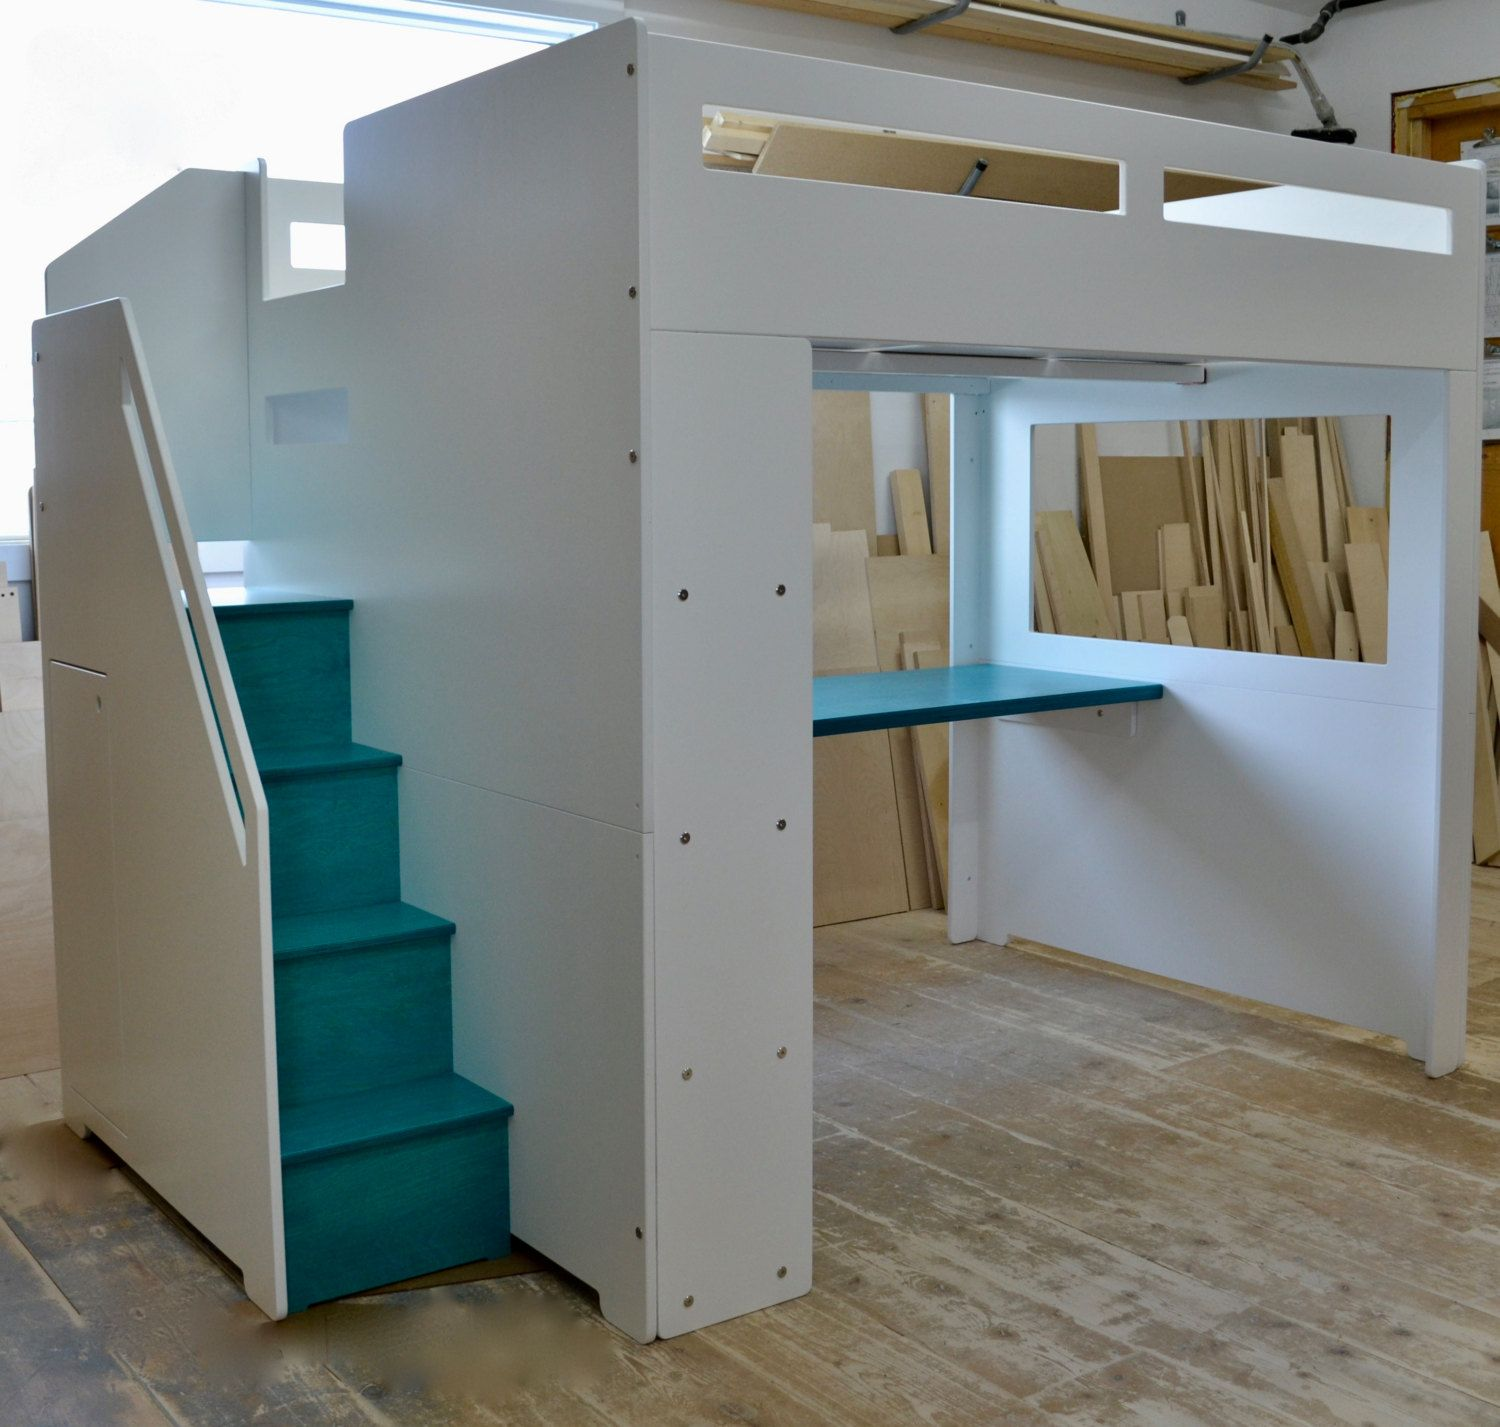 Modern Loft Bed With Storage For Full Size Mattress Modern Loft Bed Bunk Bed Designs Loft Bed